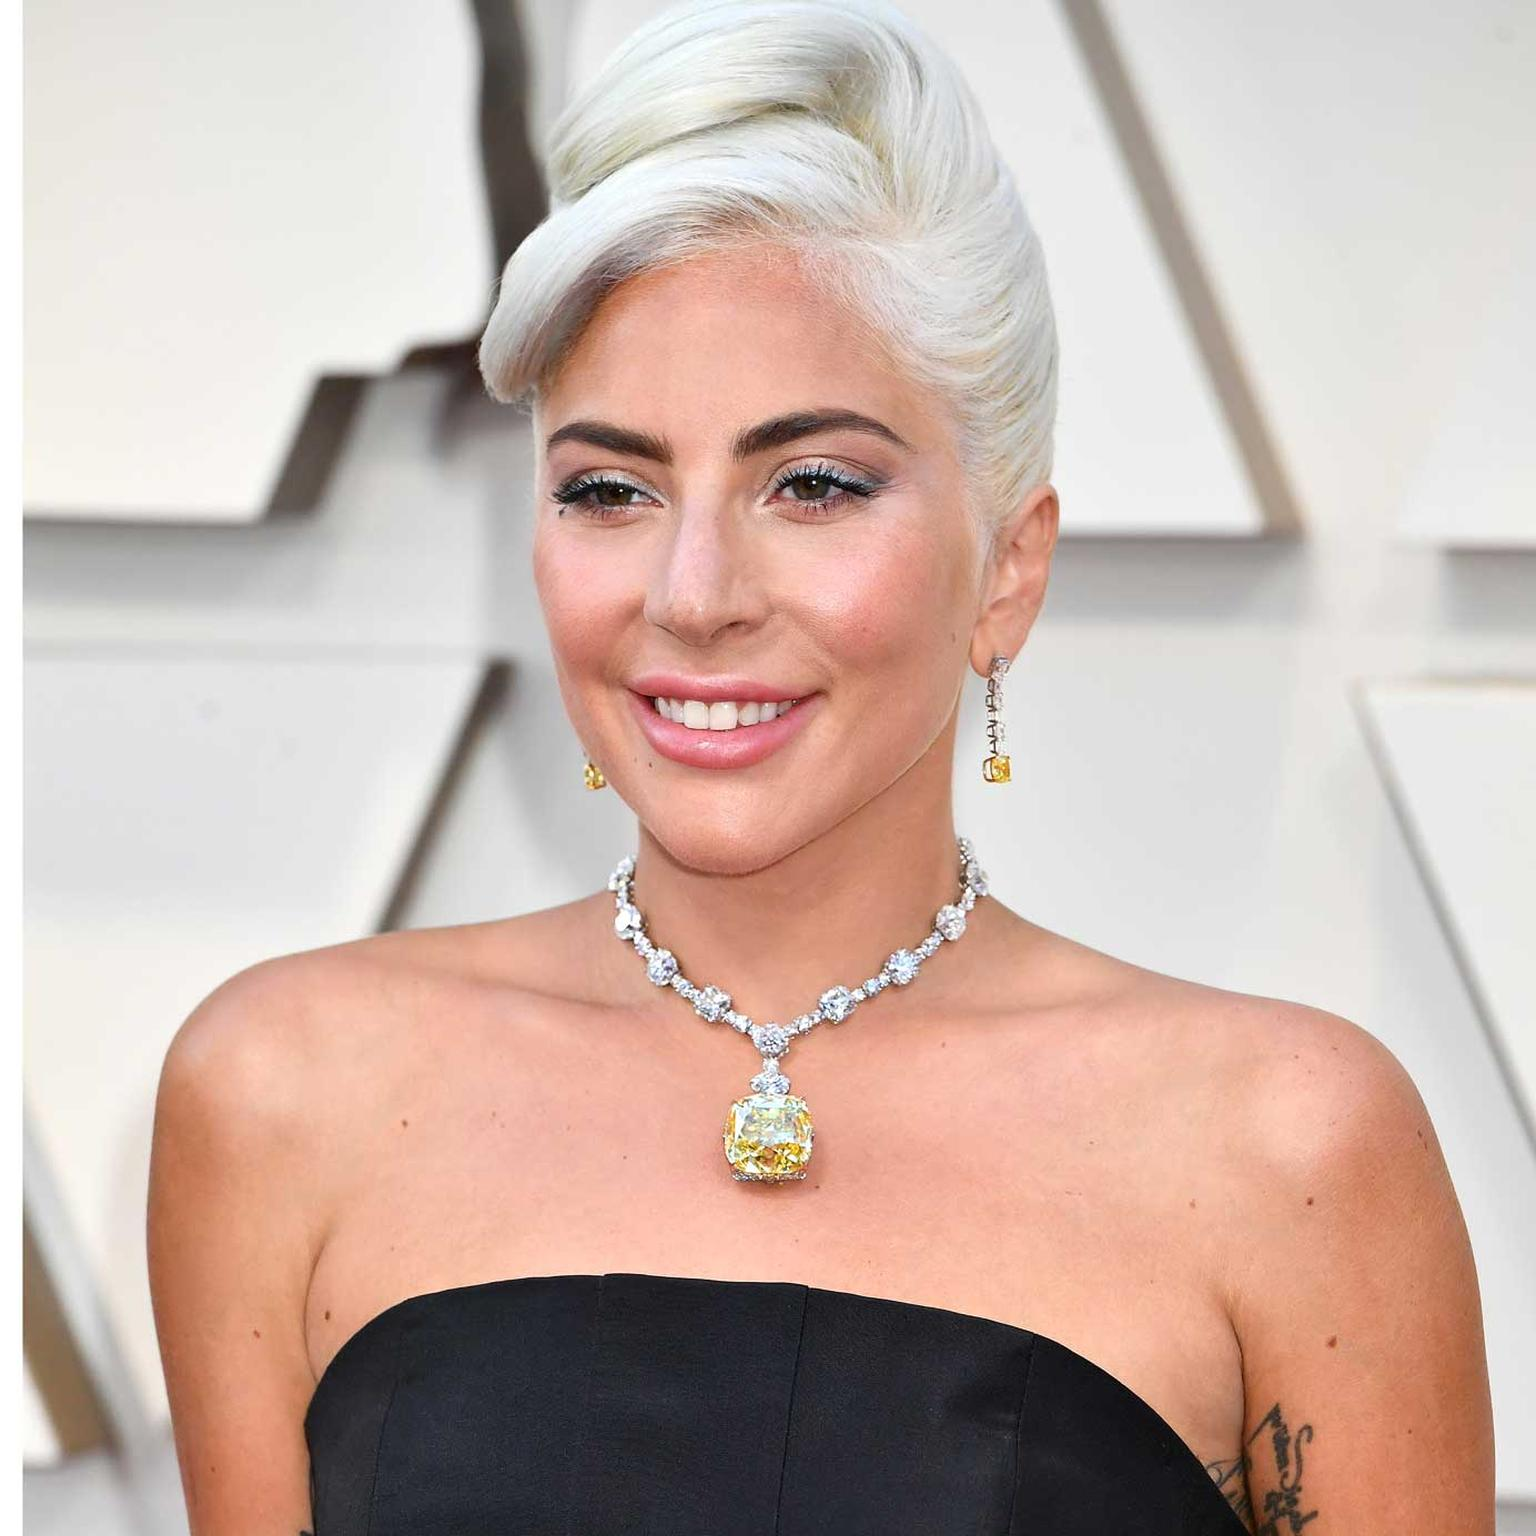 Lady Gaga Oscars close up Tiffany diamond Getty Images